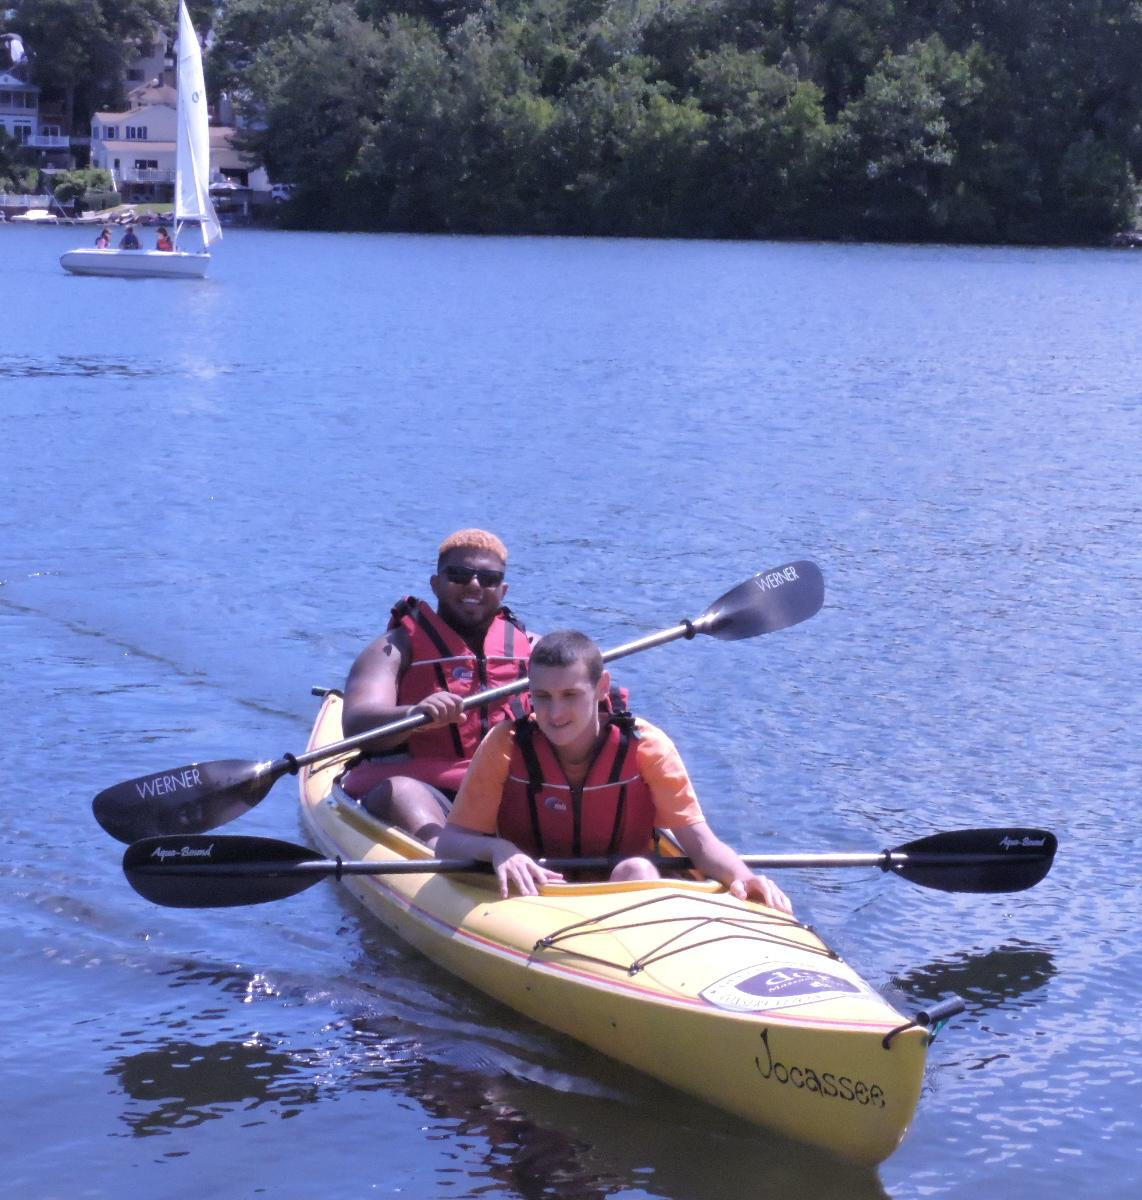 Two kayakers are paddling in a tandem kayak. Behind them, a sailboat is on the water, and houses are visible on the shoreline.